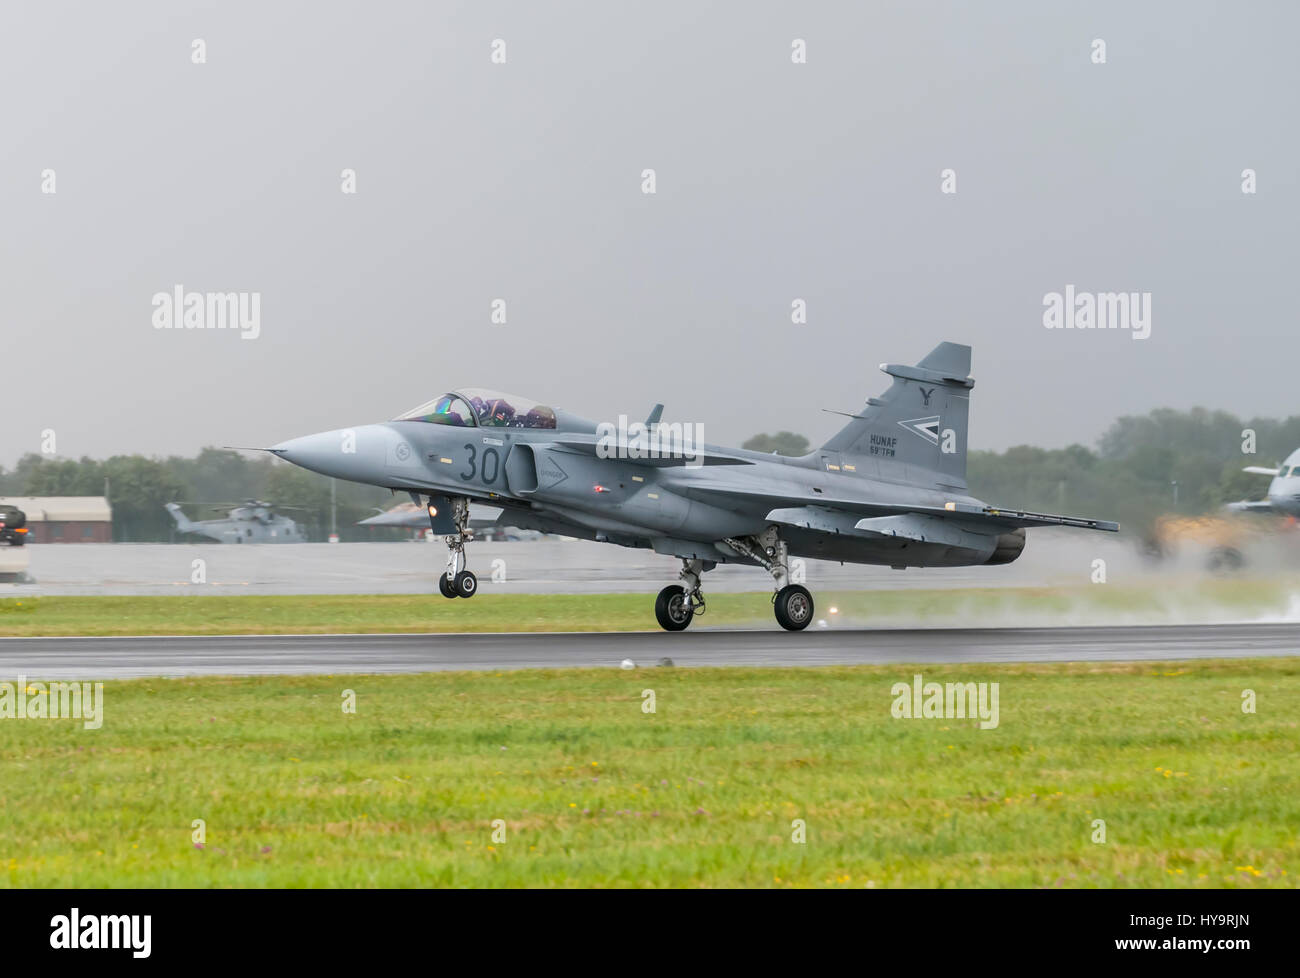 Saab JAS 39 Gripen is a light single-engine multirole fighter aircraft manufactured by the Swedish aerospace company Stock Photo